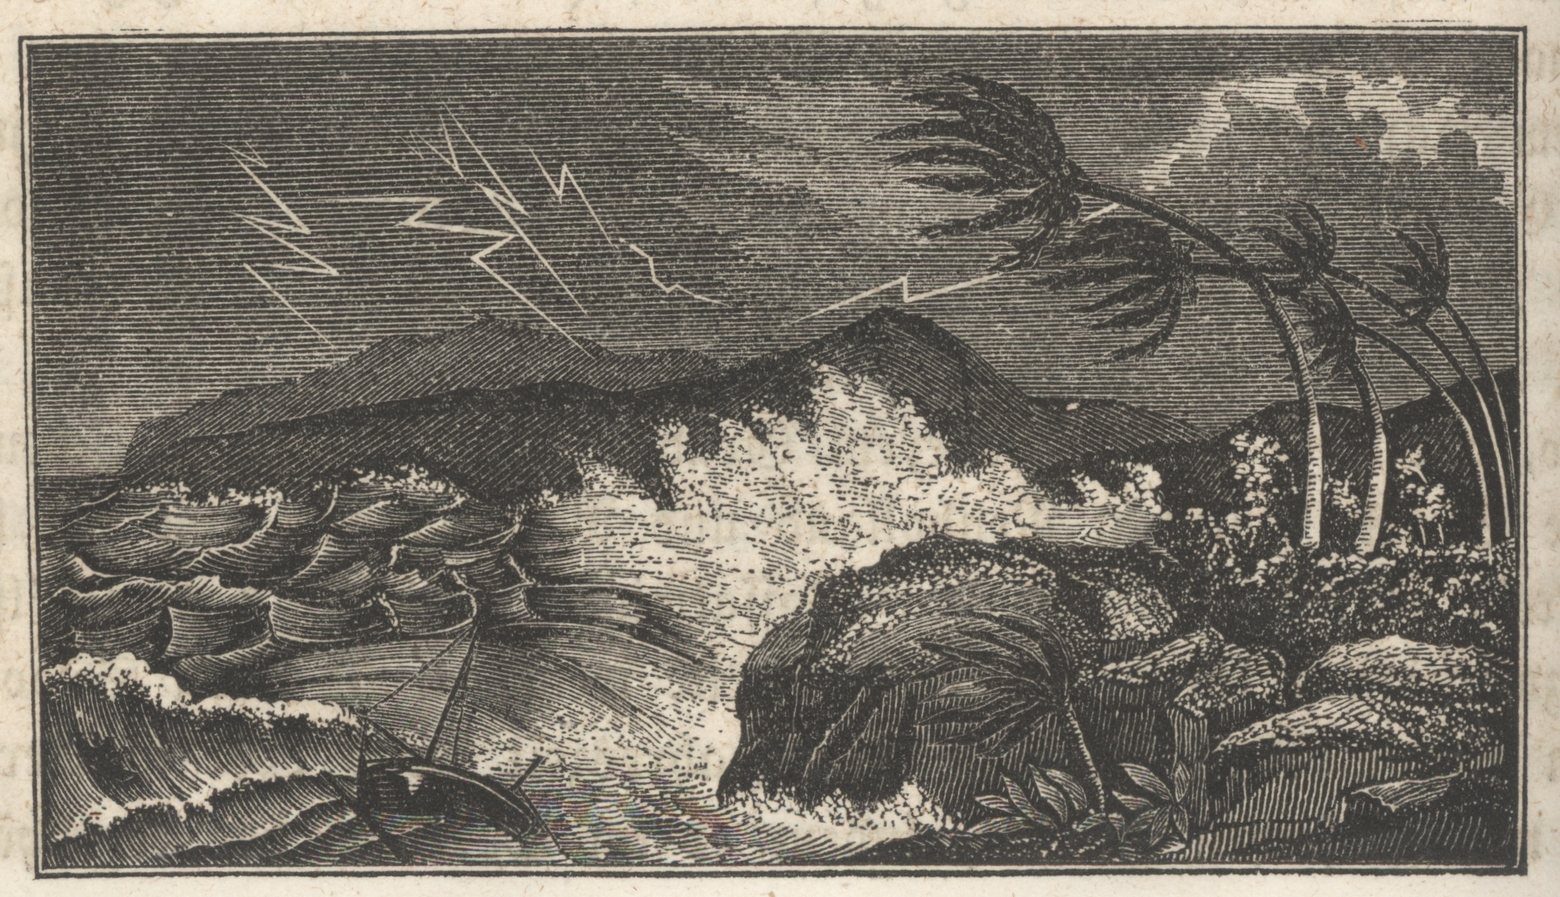 Hurricanes don't catch us off-guard as they once did, as in the time of this 1865 woodcut - Image Credit:     NOAA Central Library Historical Collections